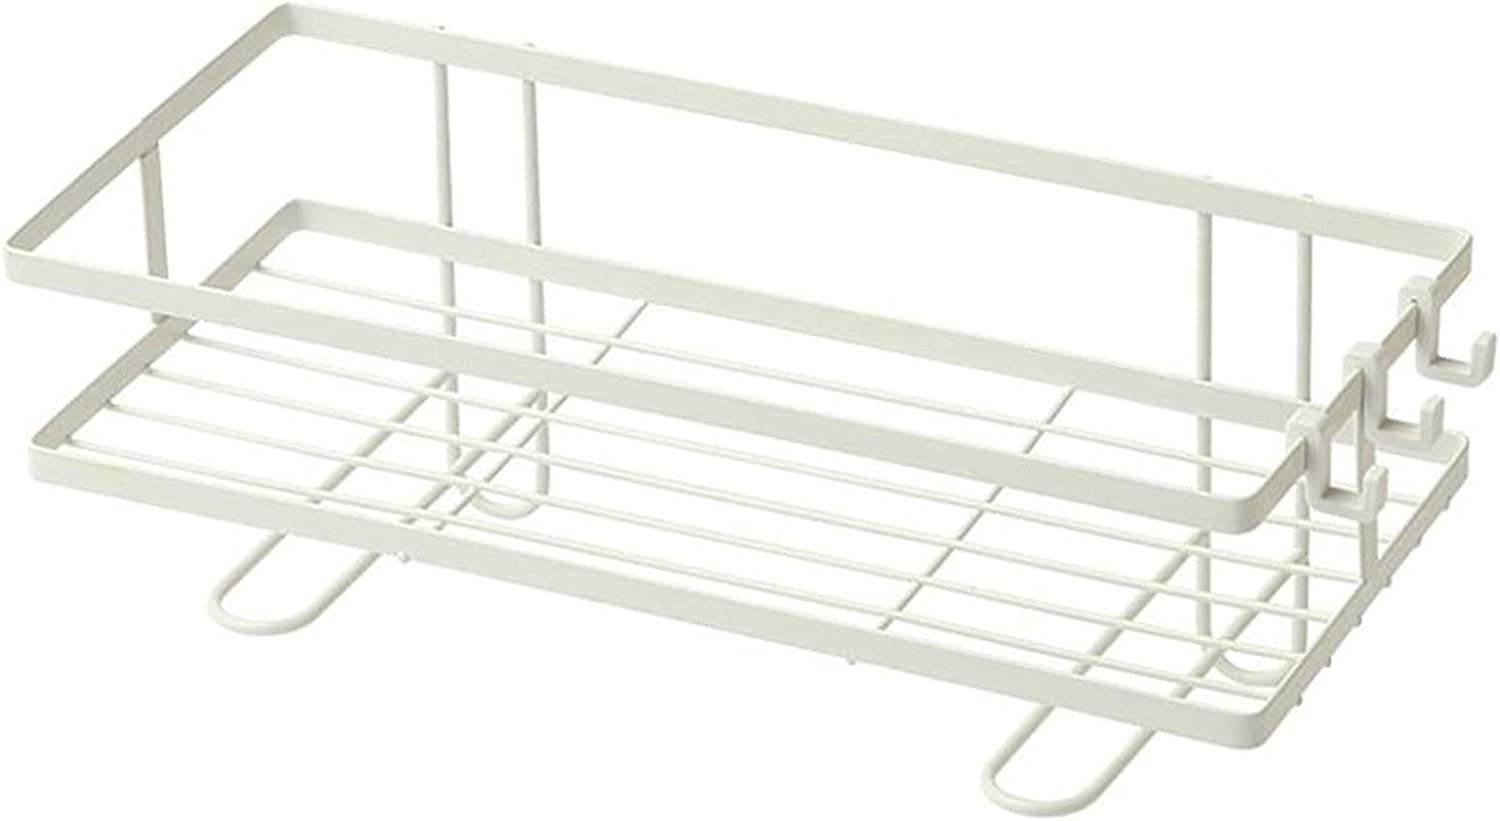 YESBAY Bathroom Organizer excellence Over New Shipping Free Rack Conv Storage Toilet